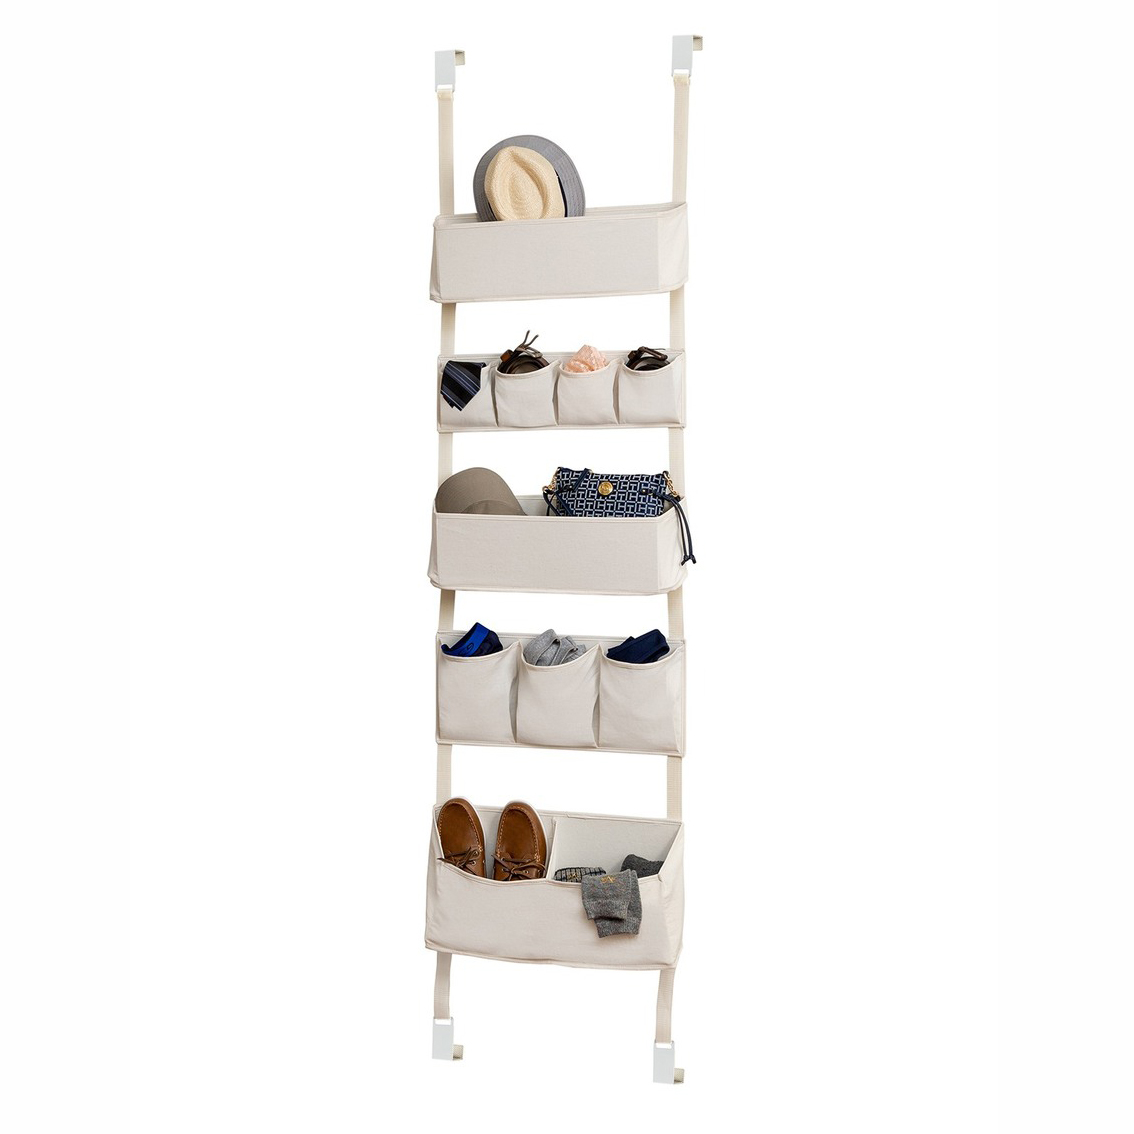 Honey-Can-Do Over-the-Door Hanging Organizer